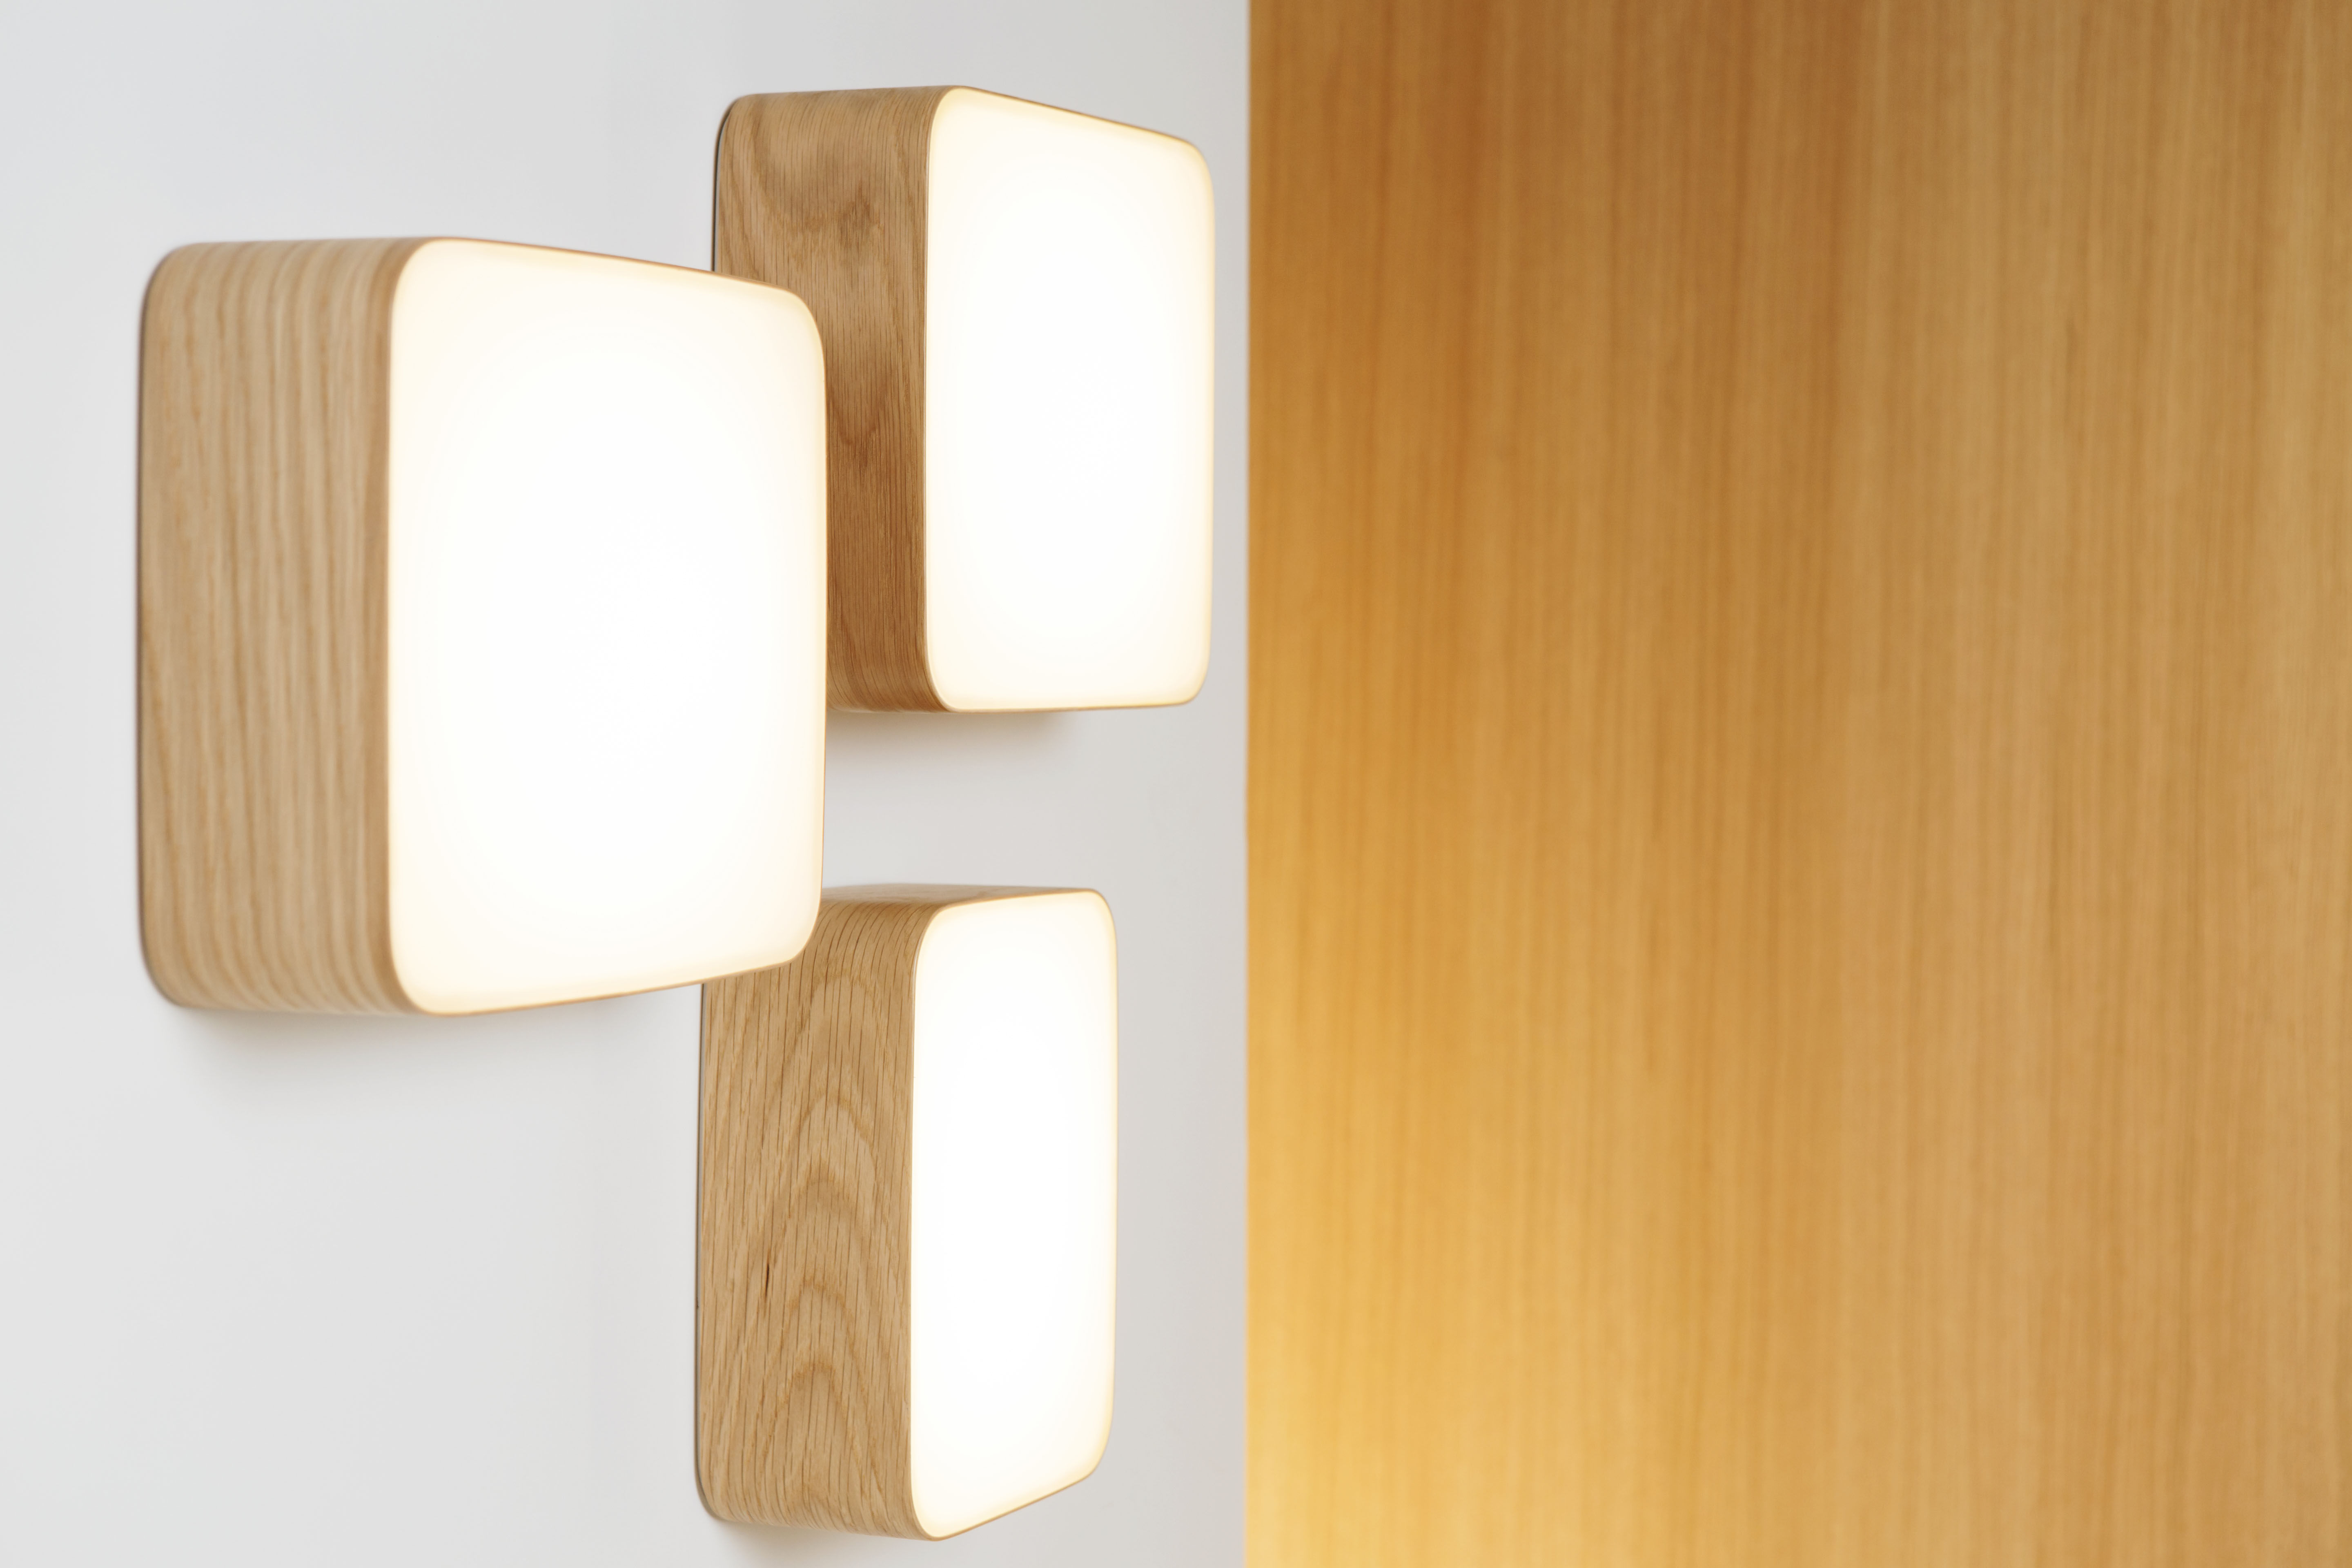 Cube small wall light 16 x 22 cm oak by tunto made in design uk aloadofball Gallery